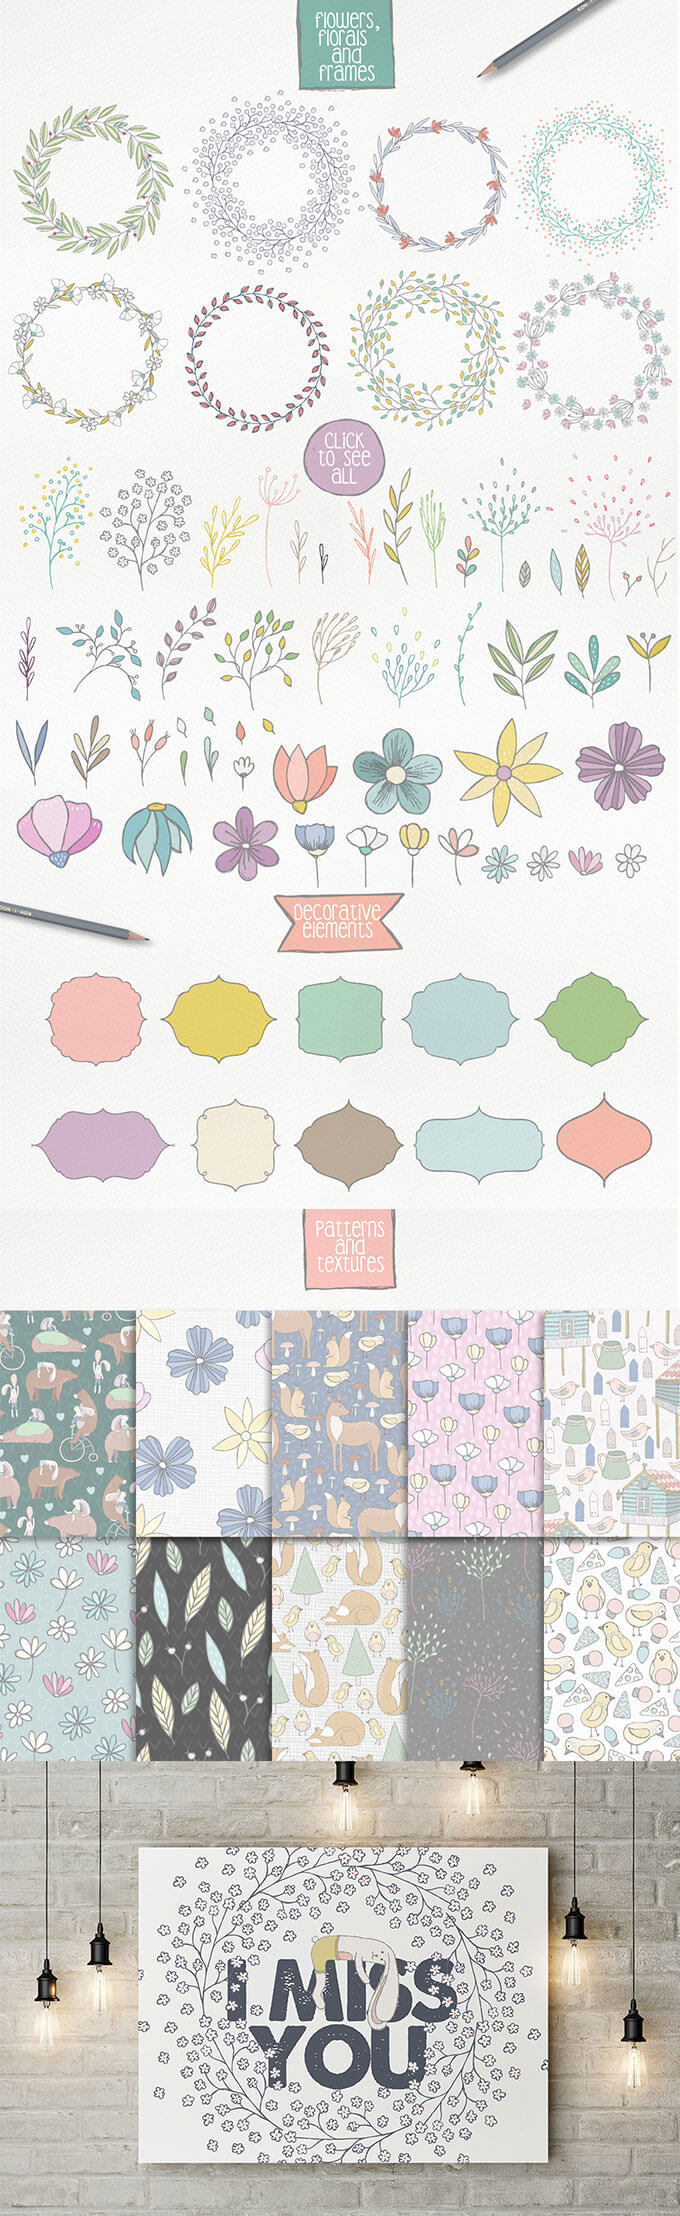 The Cute Forest Collection